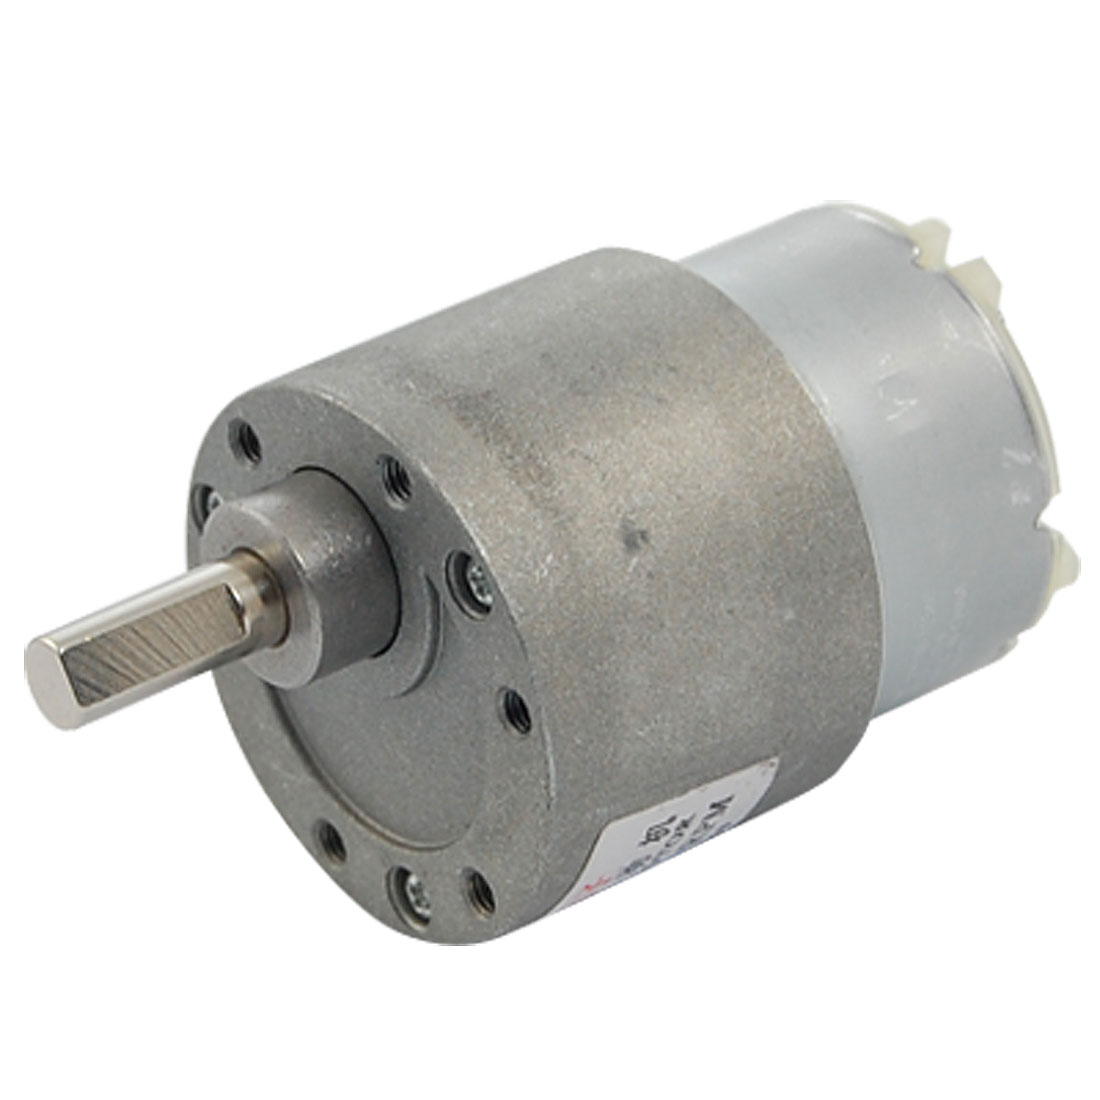 20RPM-Output-Speed-12V-Rated-Voltage-DC-Geared-Motor